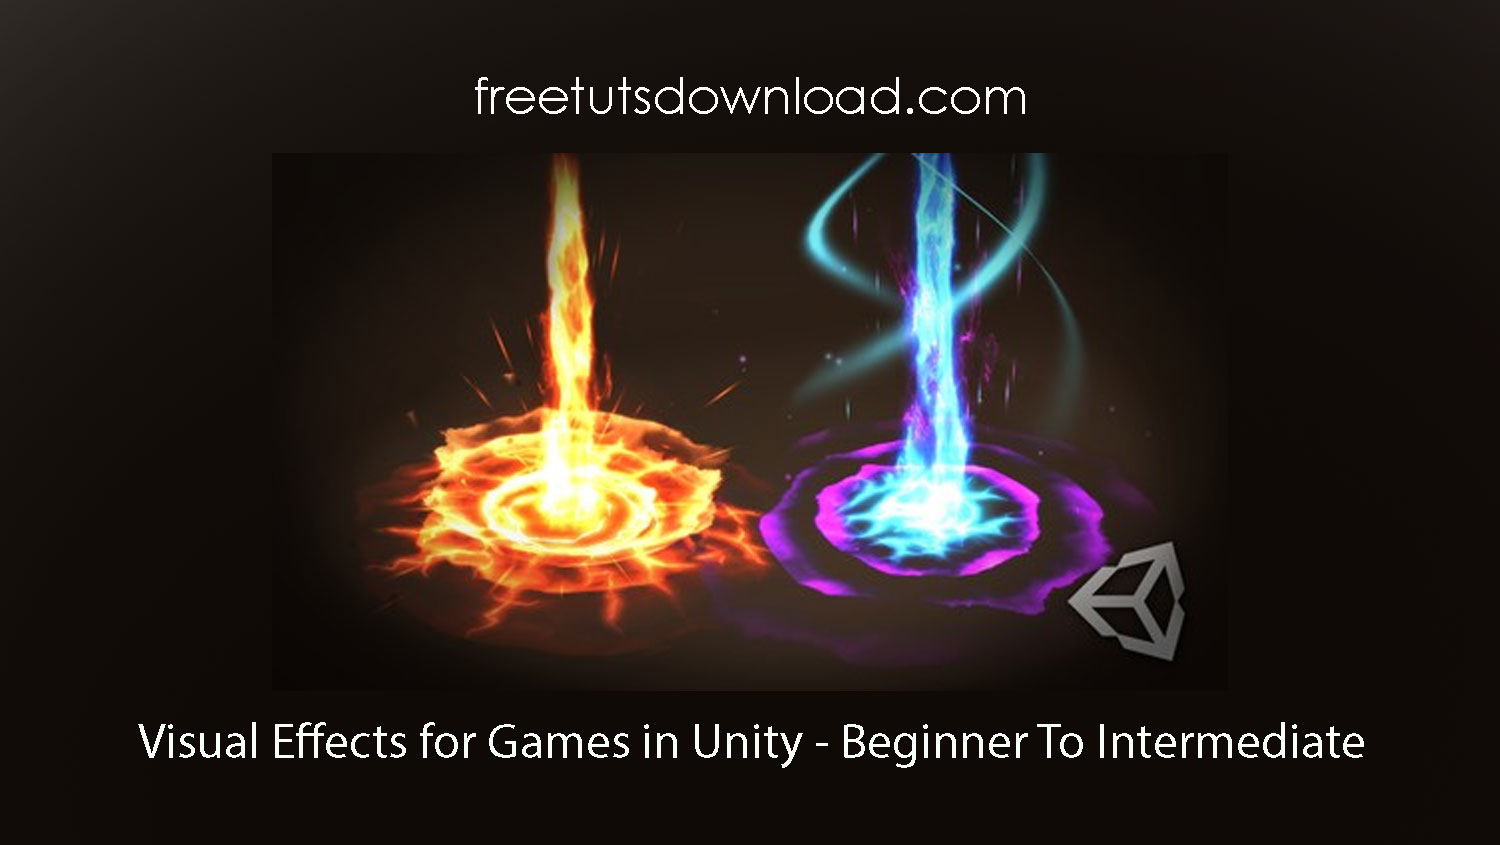 Visual Effects for Games in Unity - Beginner To Intermediate